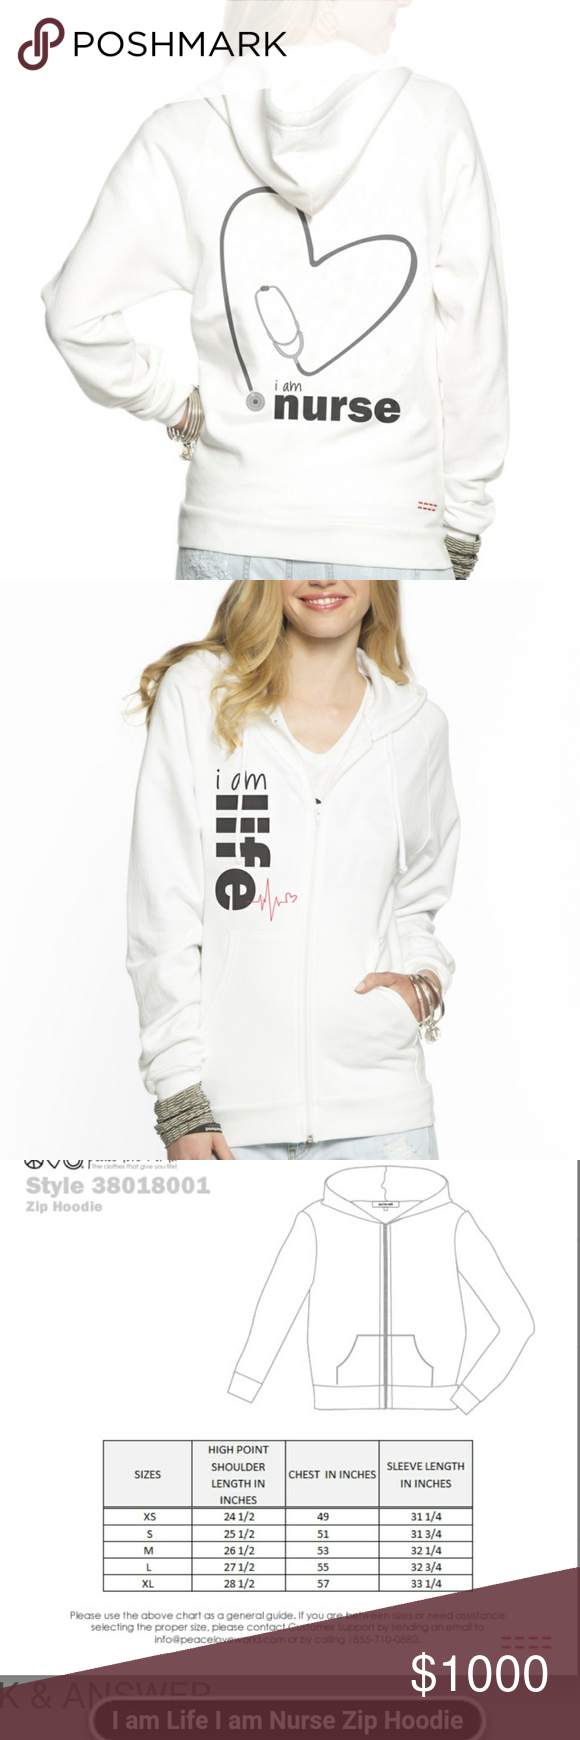 Coming Plw I Am Nurse Hoodie I Am Life I Am Nurse Hoodie Already To